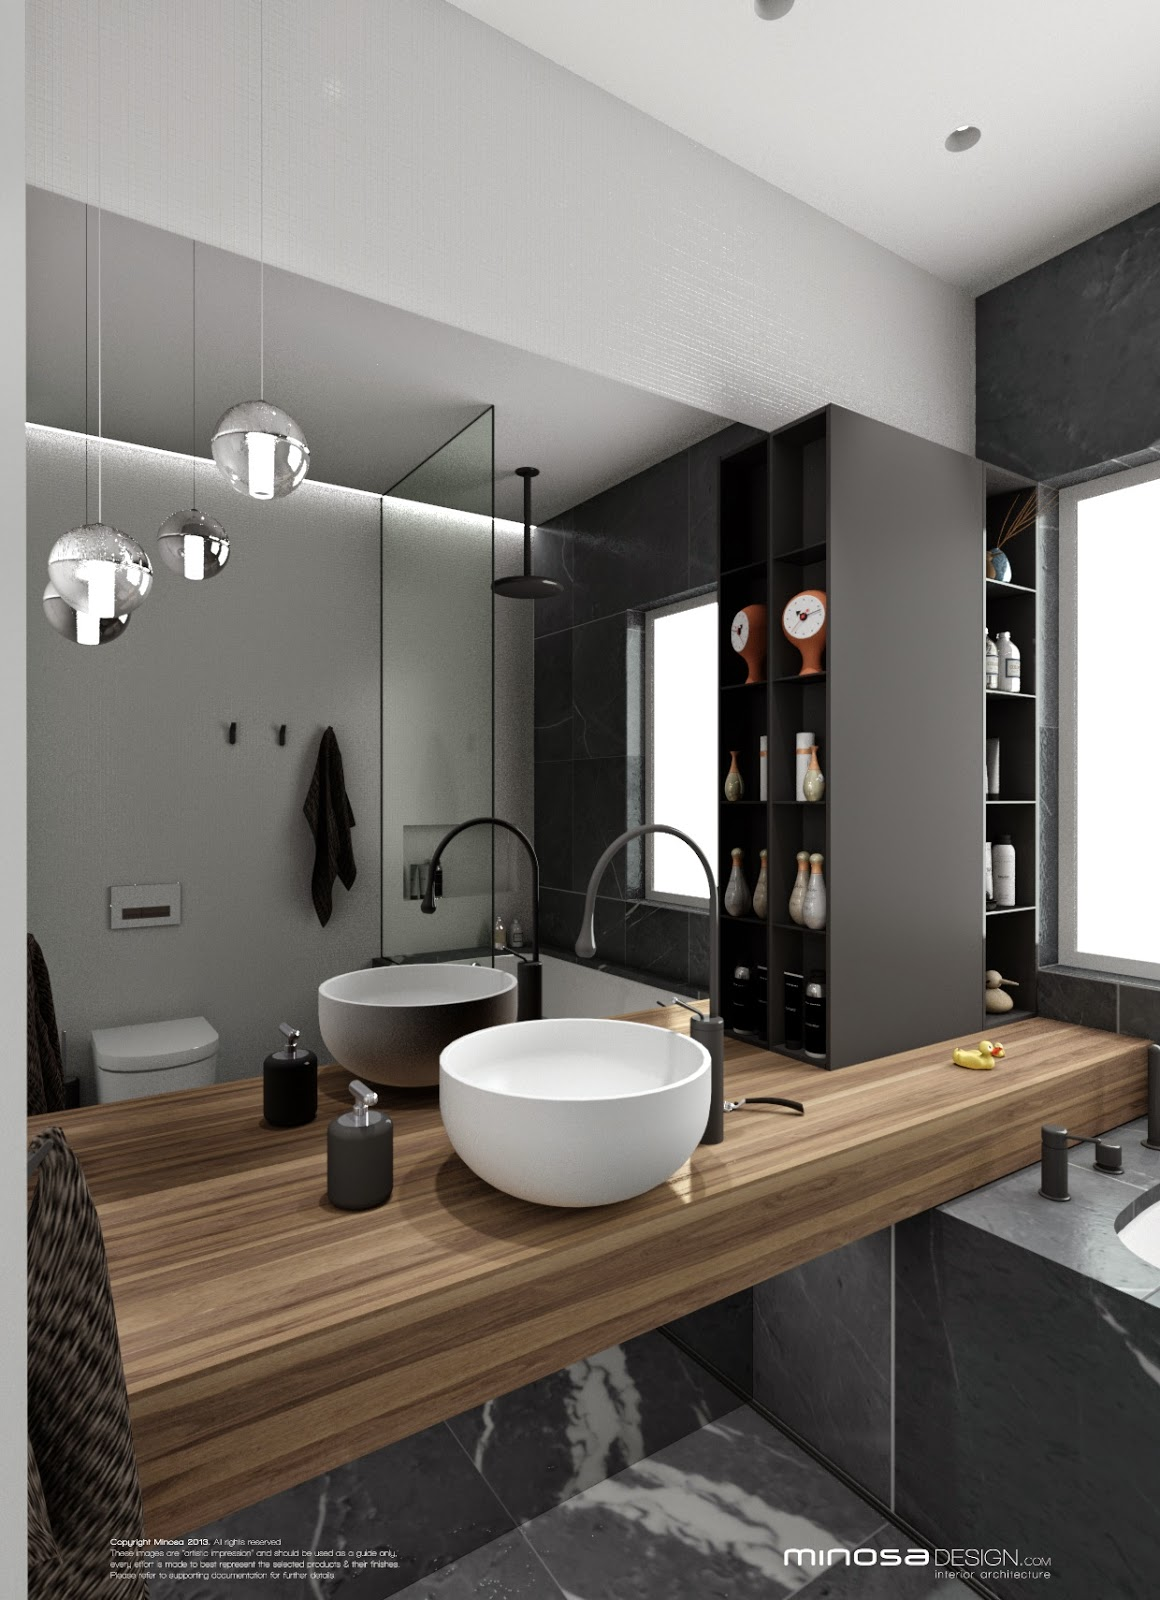 Minosa: Bathroom Design - Small space feels large on Bathroom Ideas For Small Space  id=56645